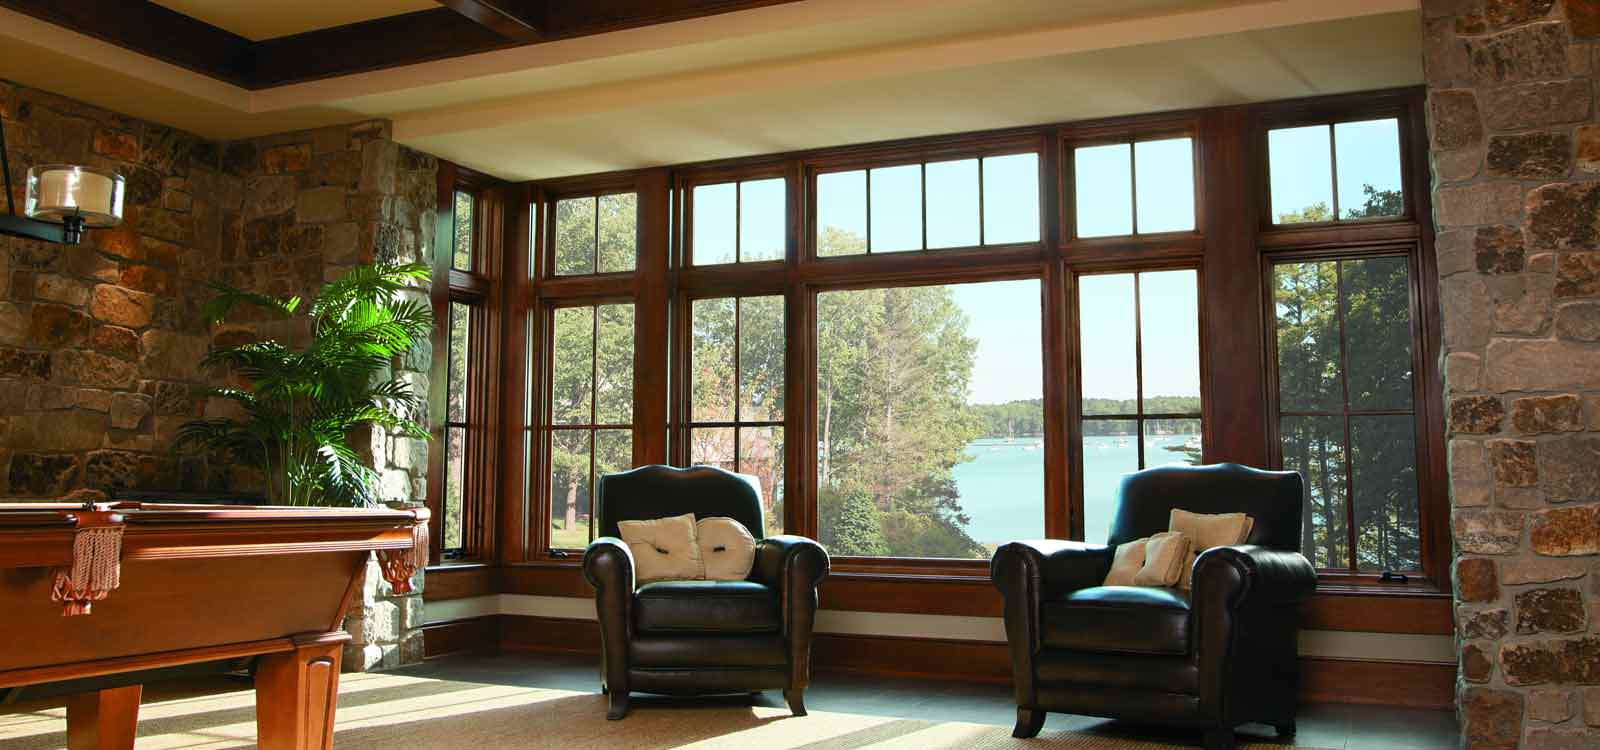 Andersen Windows Window Installer Chicago Abedward Com